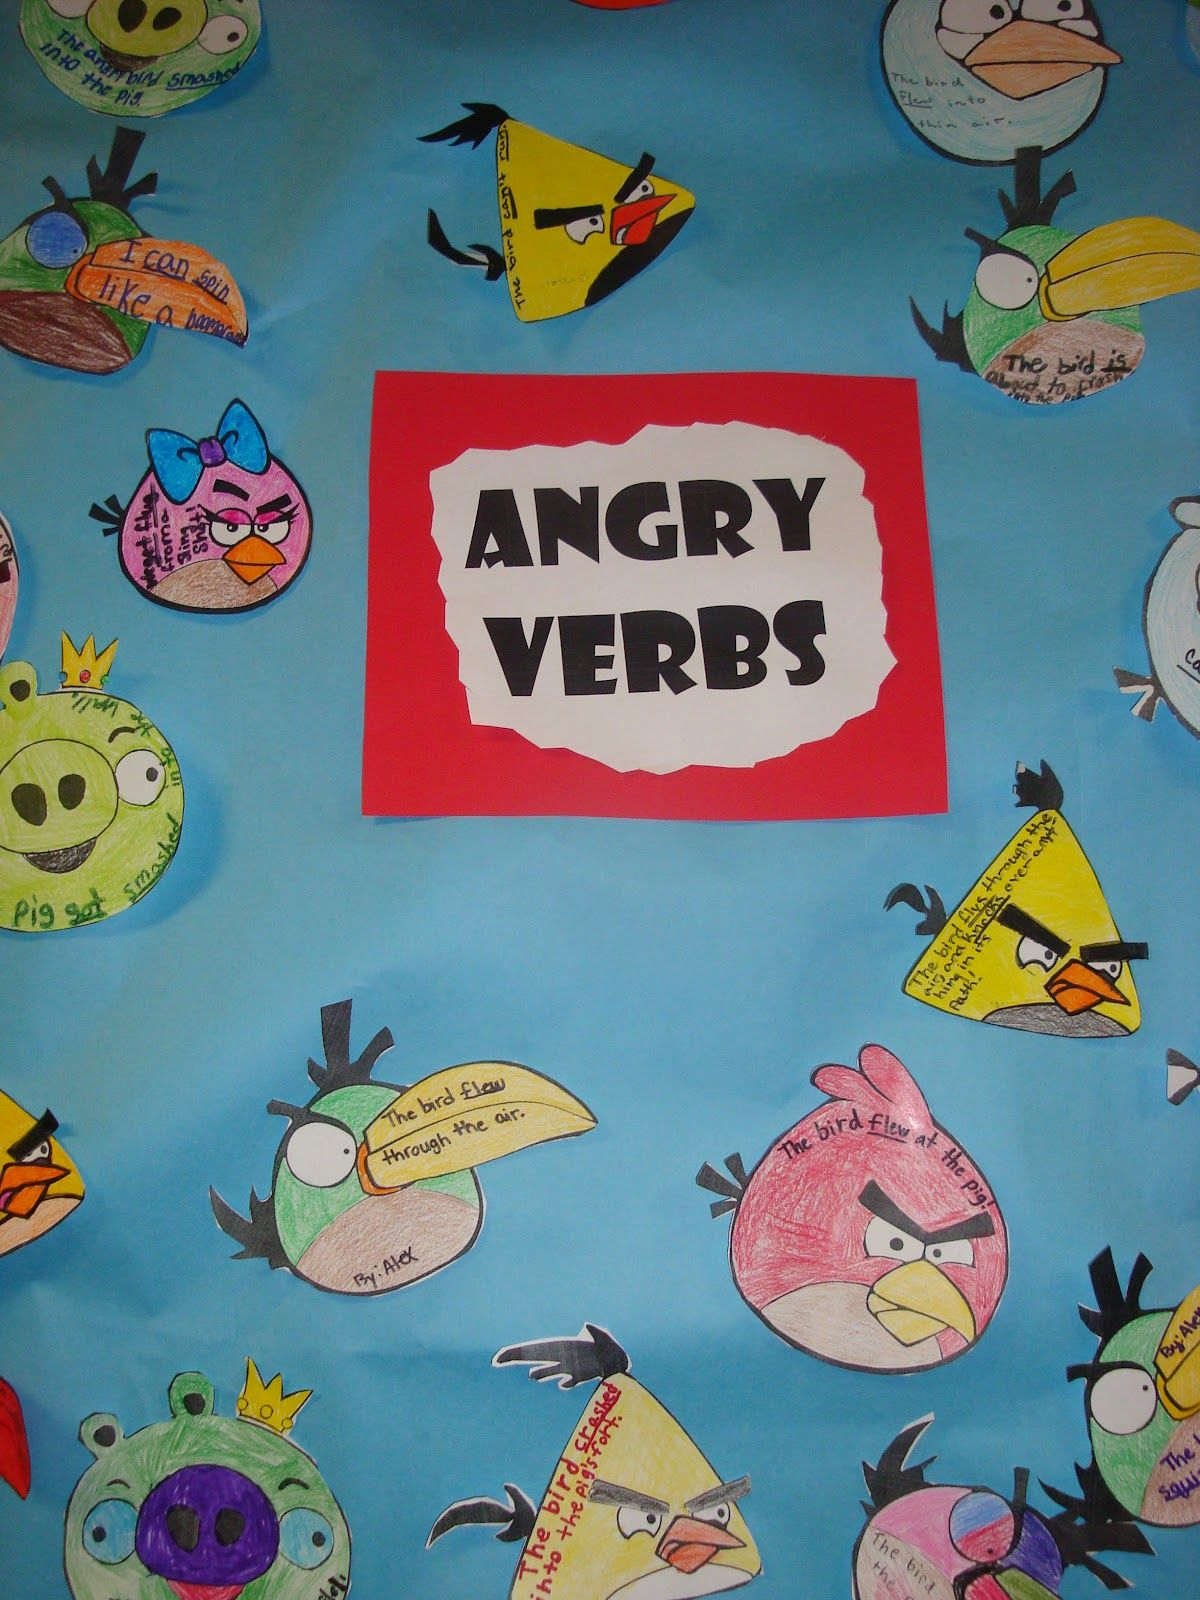 Angry verbs board - teaching kids about verbs!